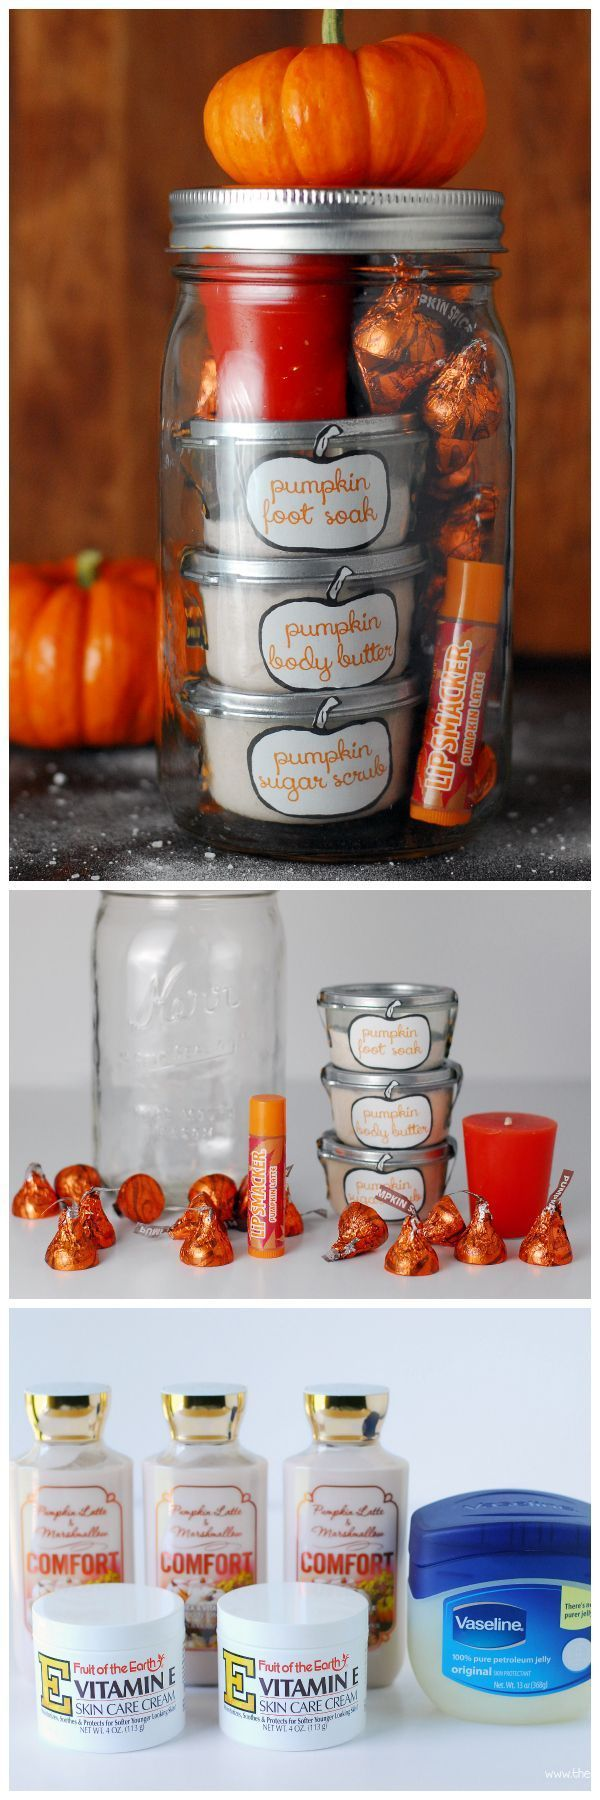 This Pumpkin Pamering Jar is perfect for autumn. It is a large mason jar gift filled with delicious scented pumpkin body care products, pumpkin treats and a pumpkin candle.